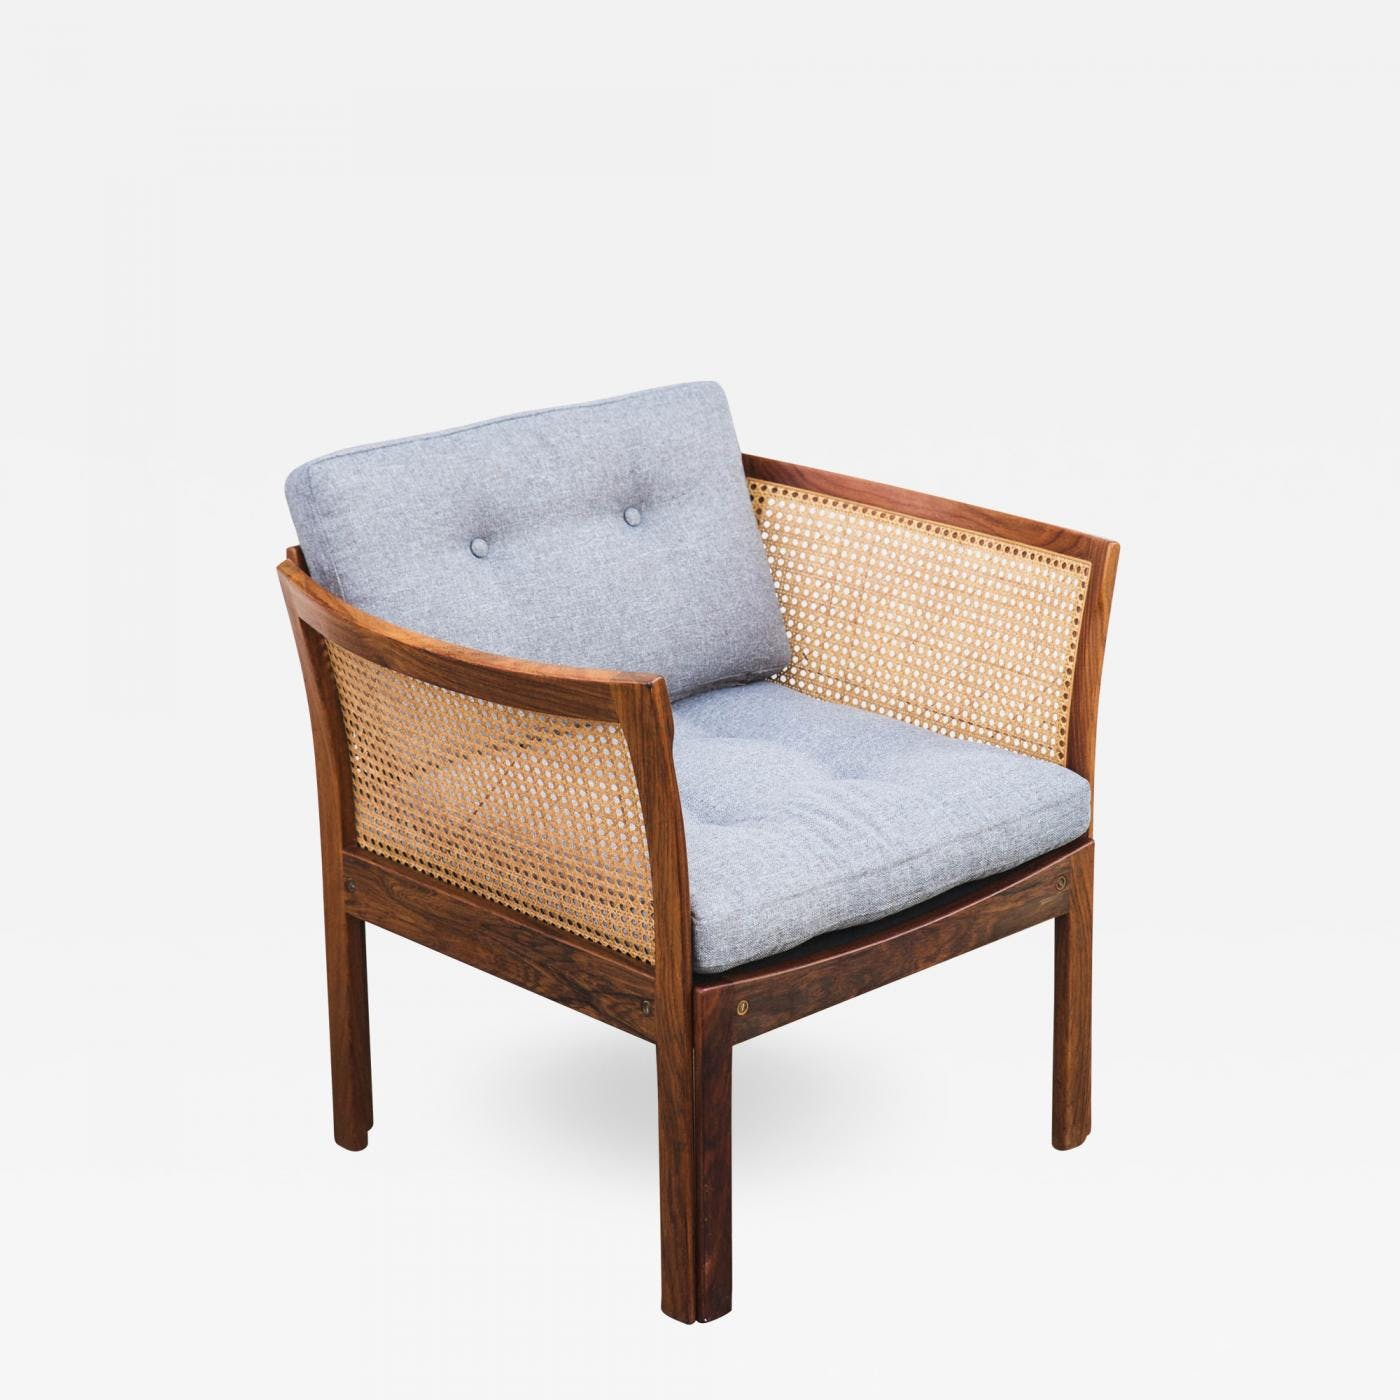 Danish Modern Lounge Chair Danish Modern Plexus Rosewood Lounge Chair By Illum Wikkelso For Cf Christensen Pair Available